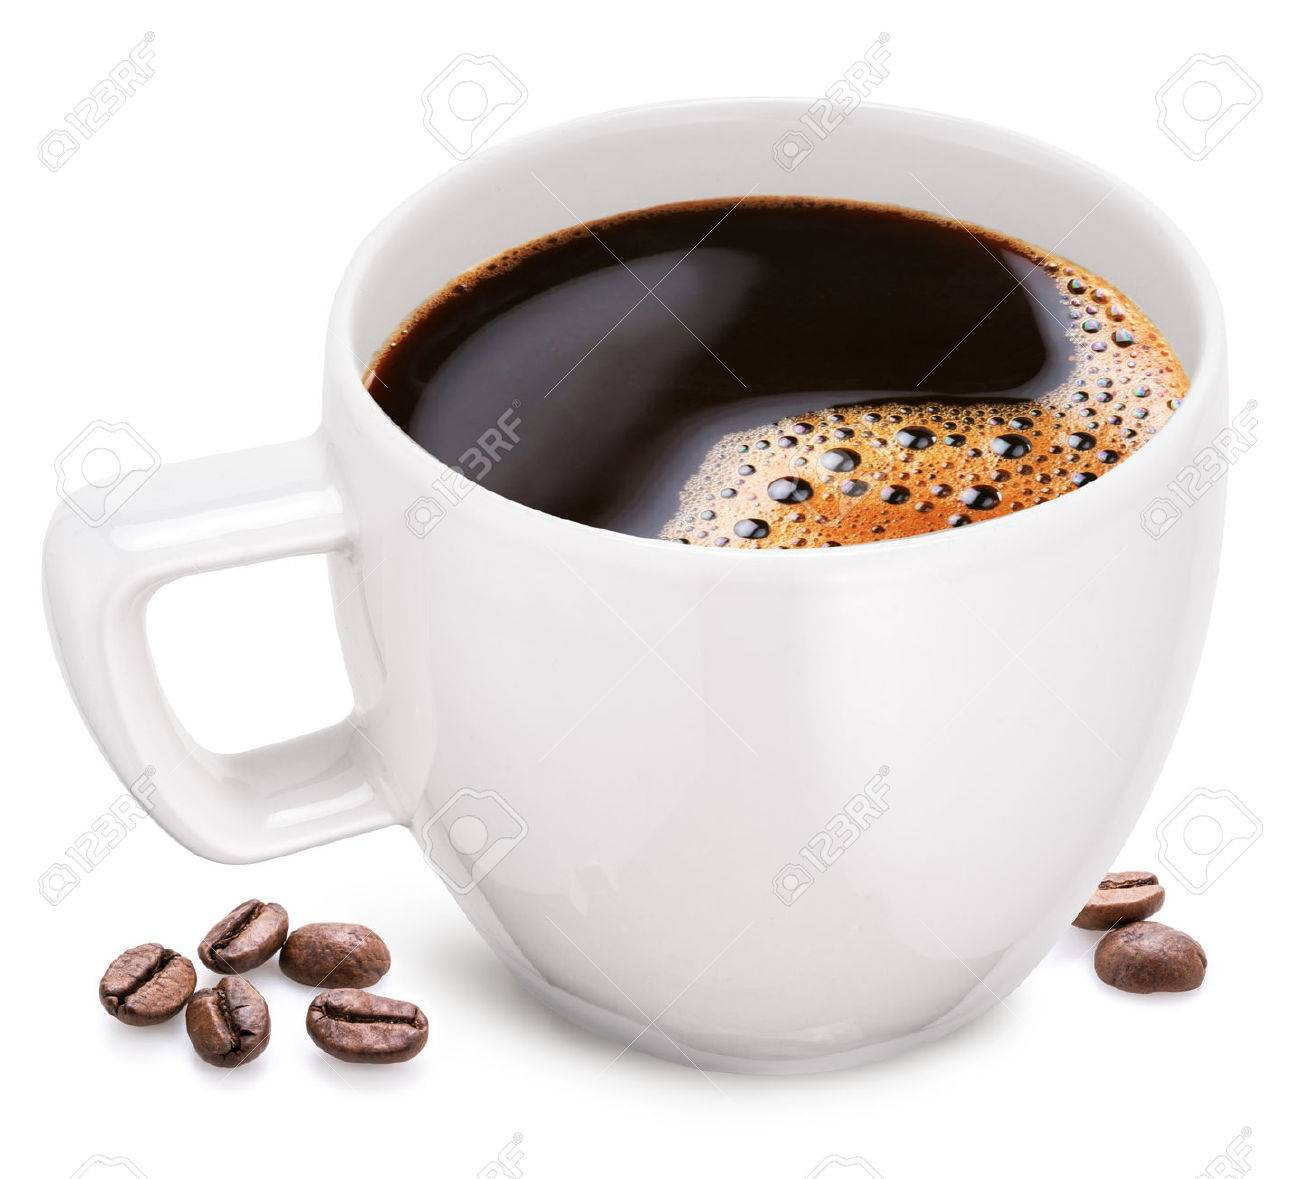 Cup of coffee on a white background. File contains one cup's work path. Standard-Bild - 47422790